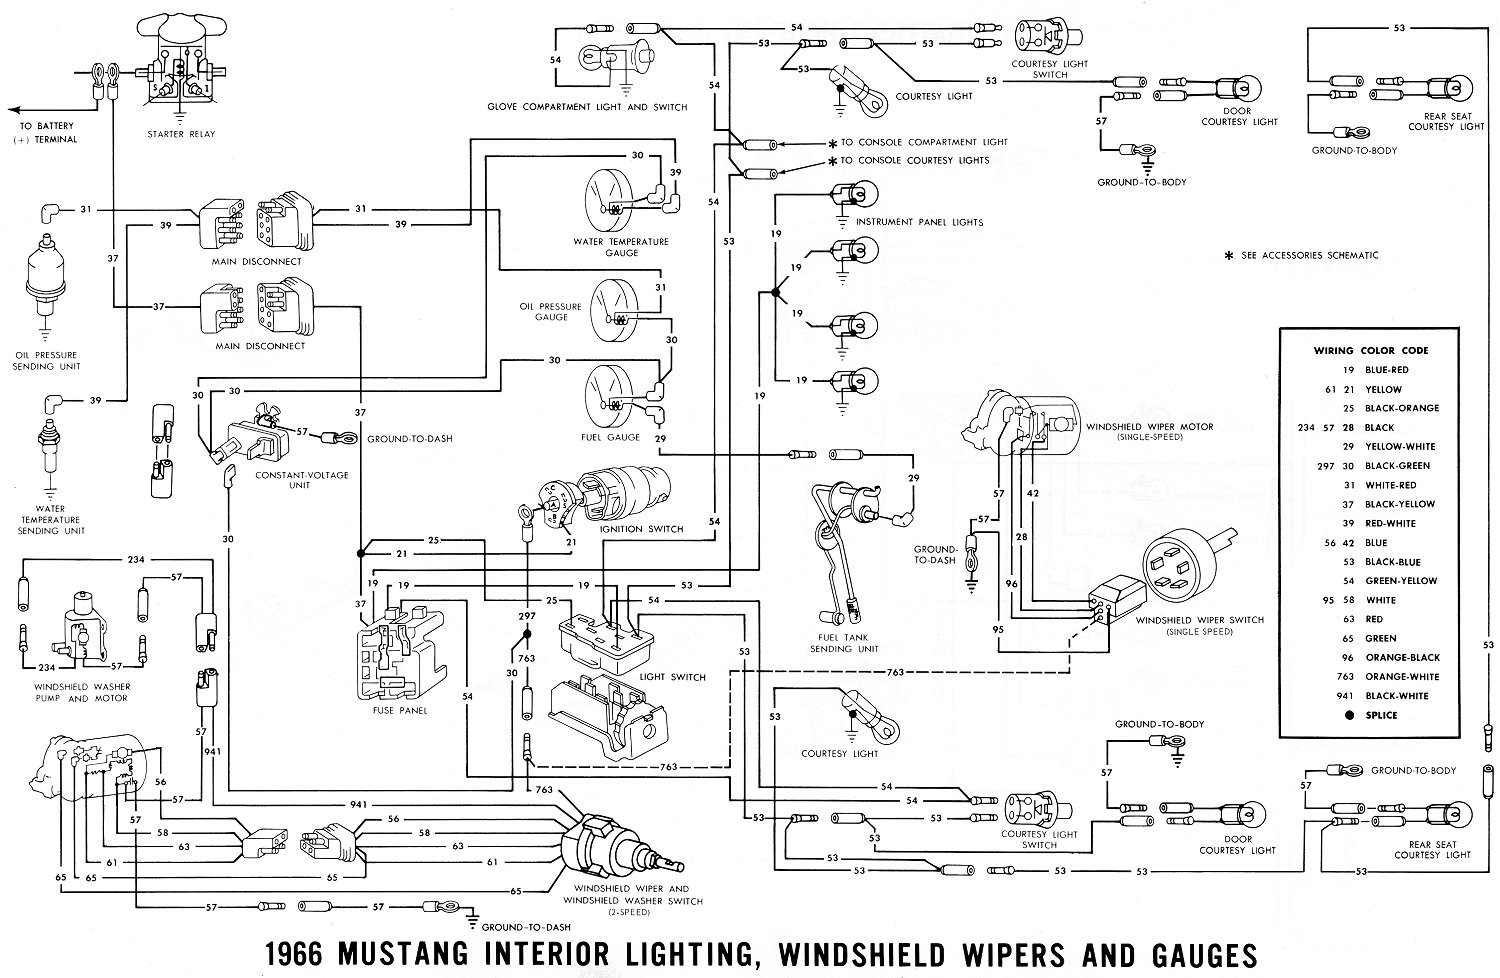 1966 Mustang Wiring Diagrams Average Joe Restoration Ford Rear Wiper Motor Diagram Windshield And Gauges Schematic